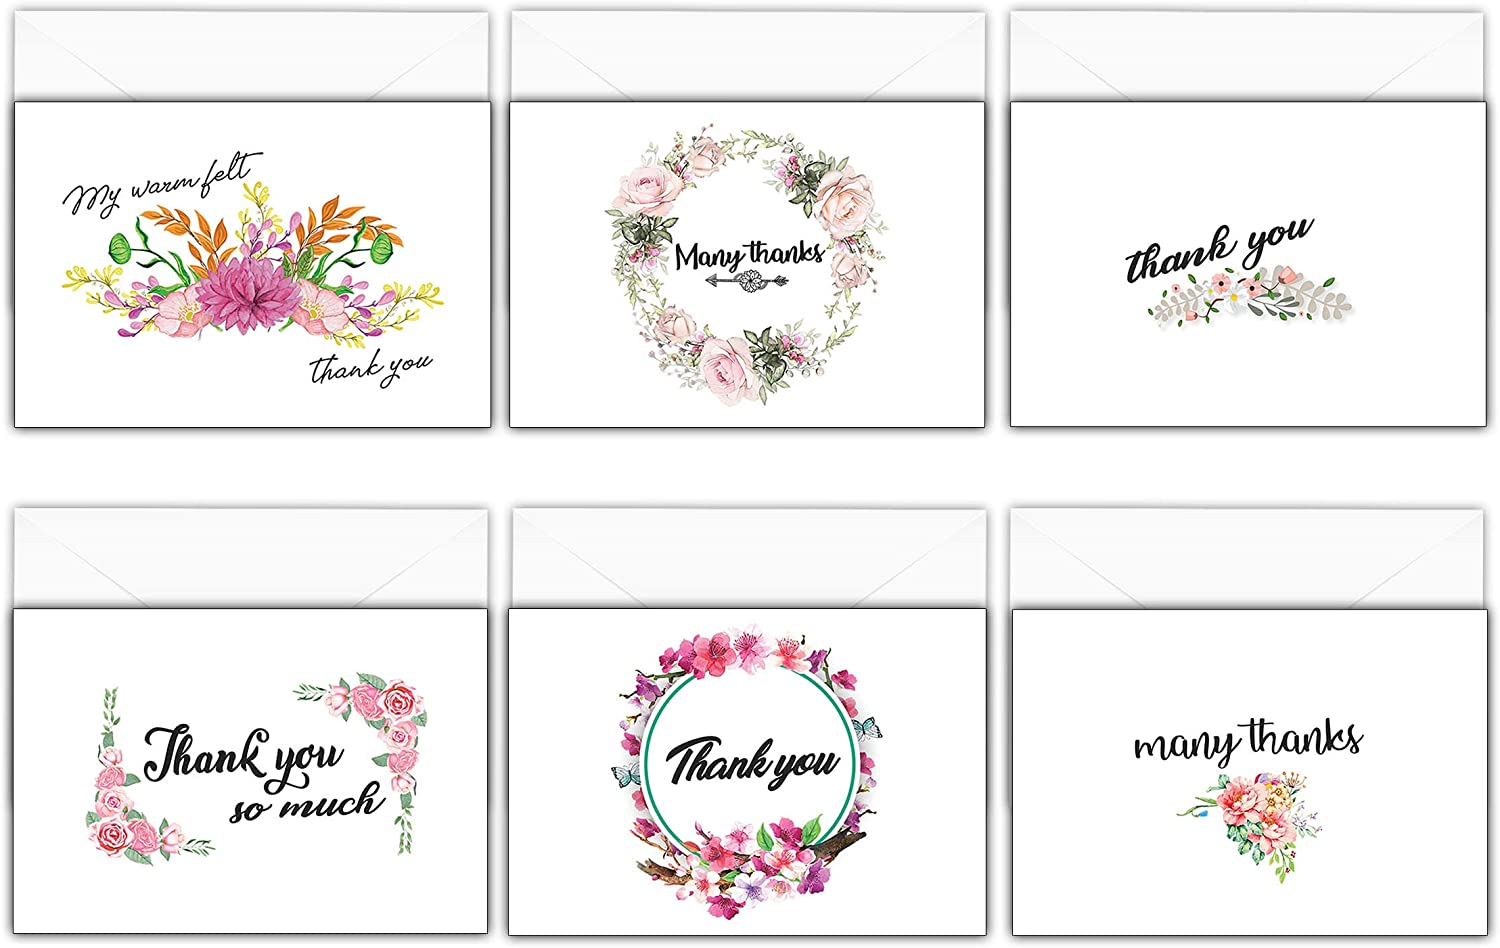 pack of 6 cards Wedding Gift Thank You Cards various designs to choose from